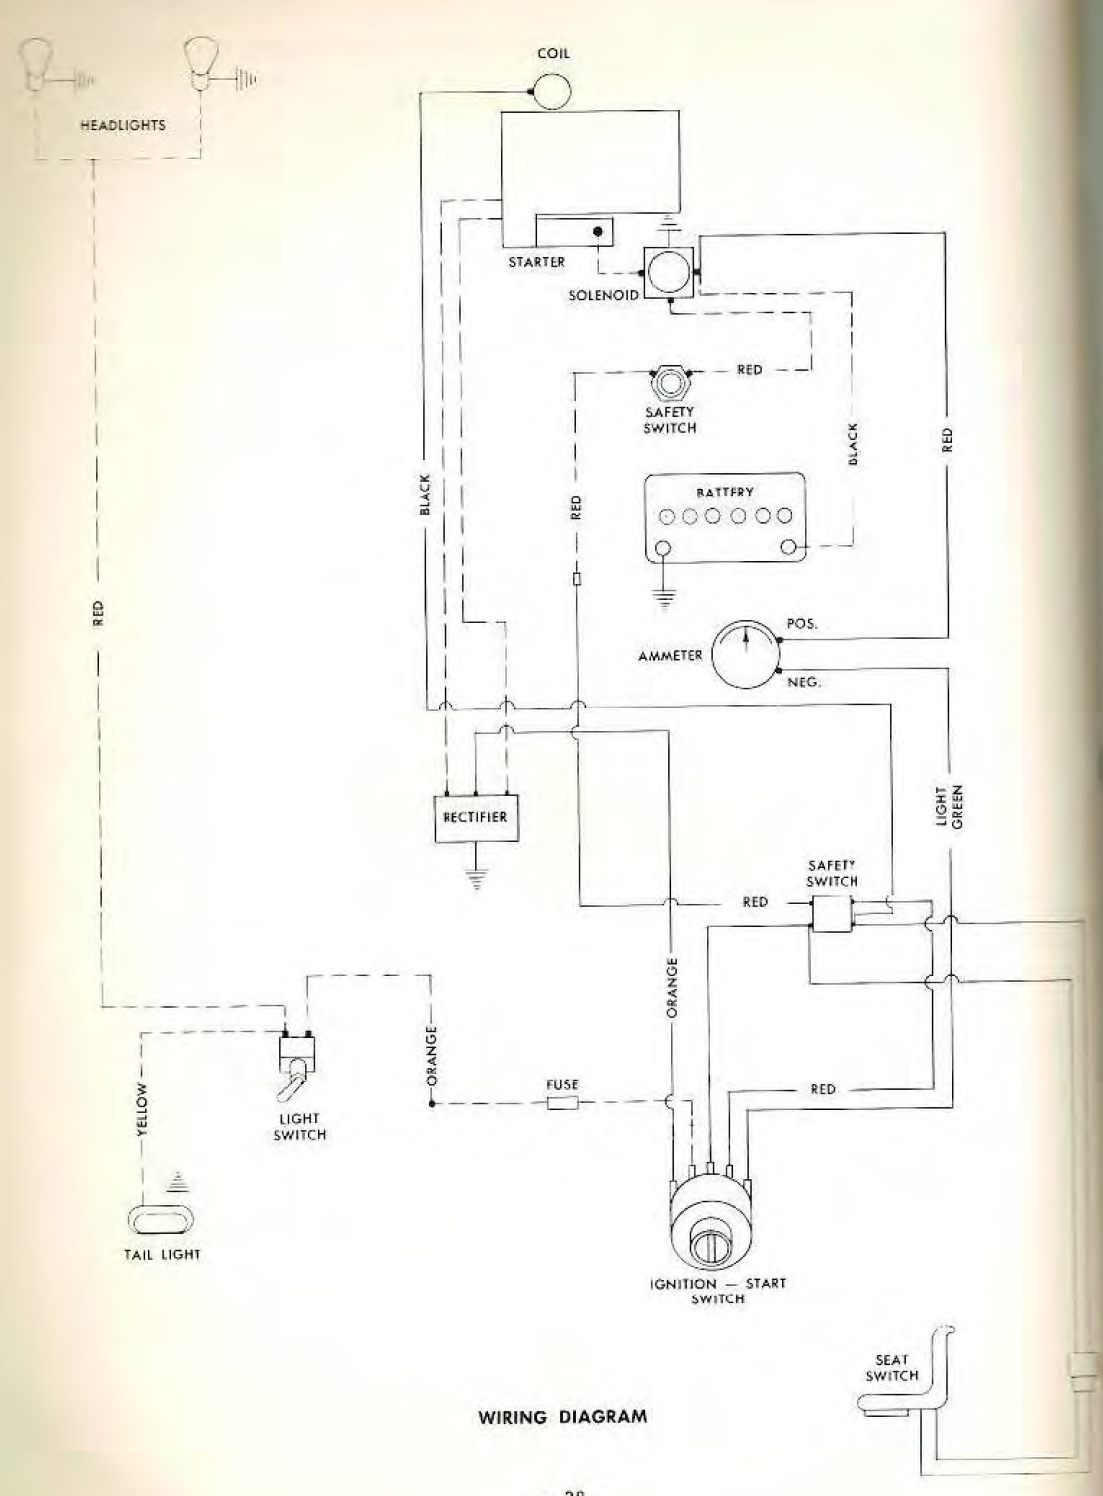 C100 Wiring Diagram - Wheel Horse Electrical